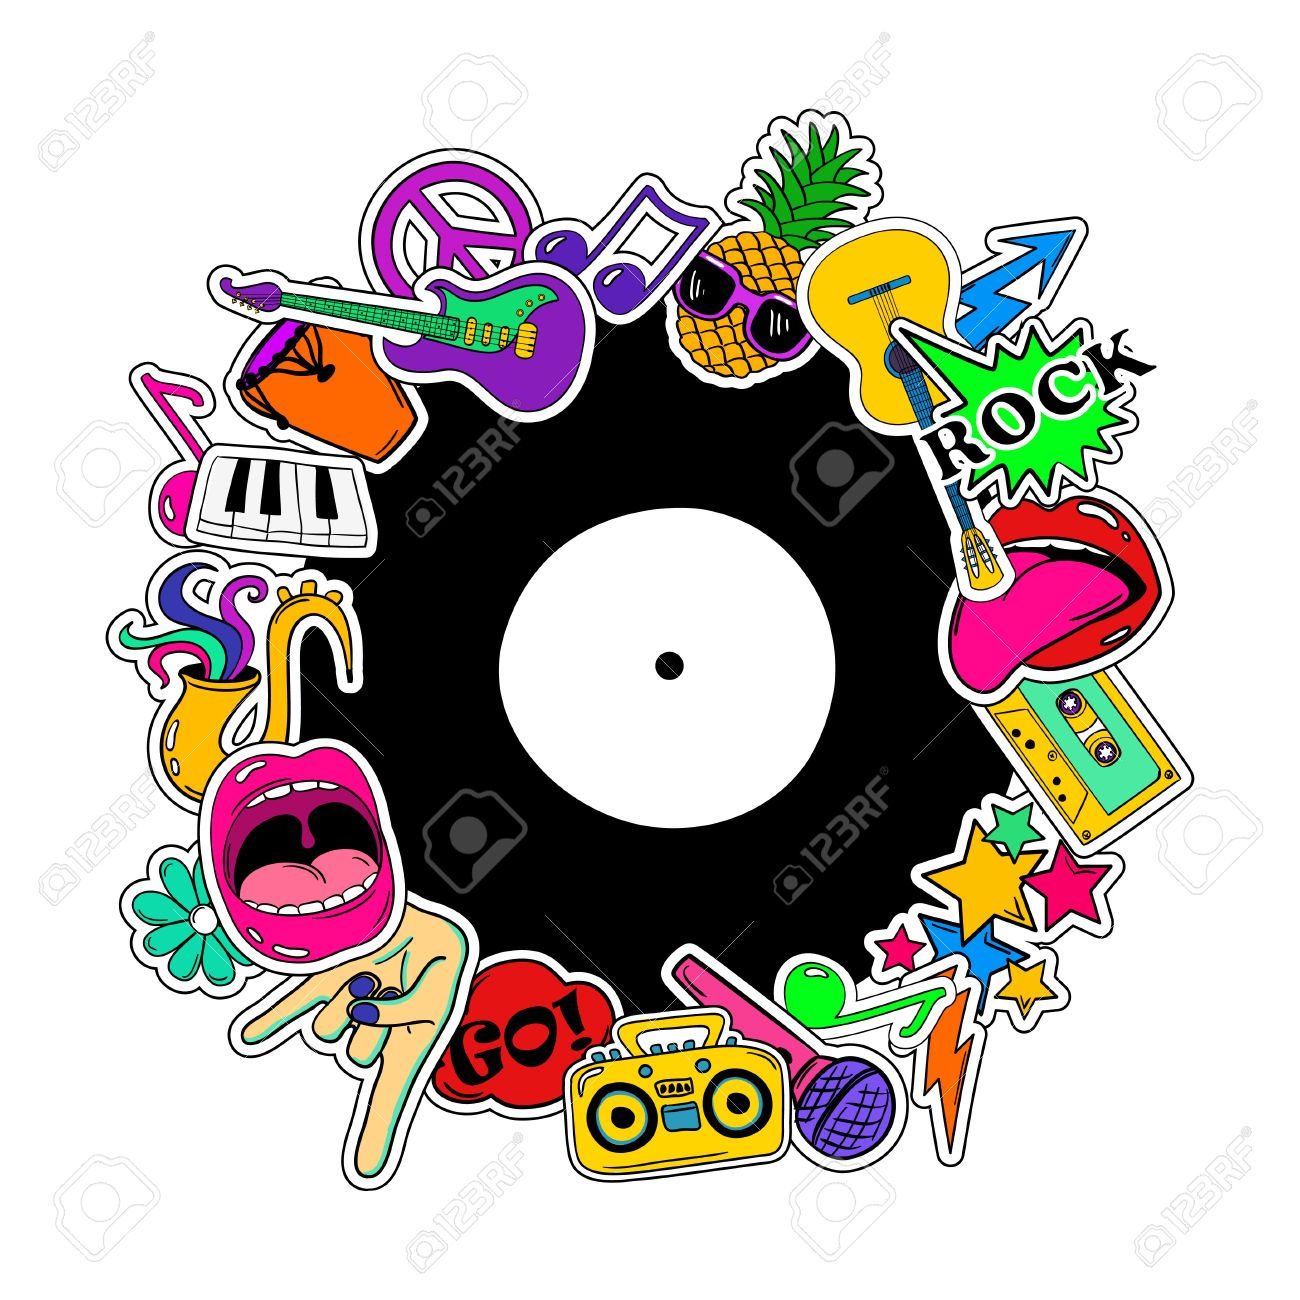 Colorful fun background of music stickers, icons, emoji, pins